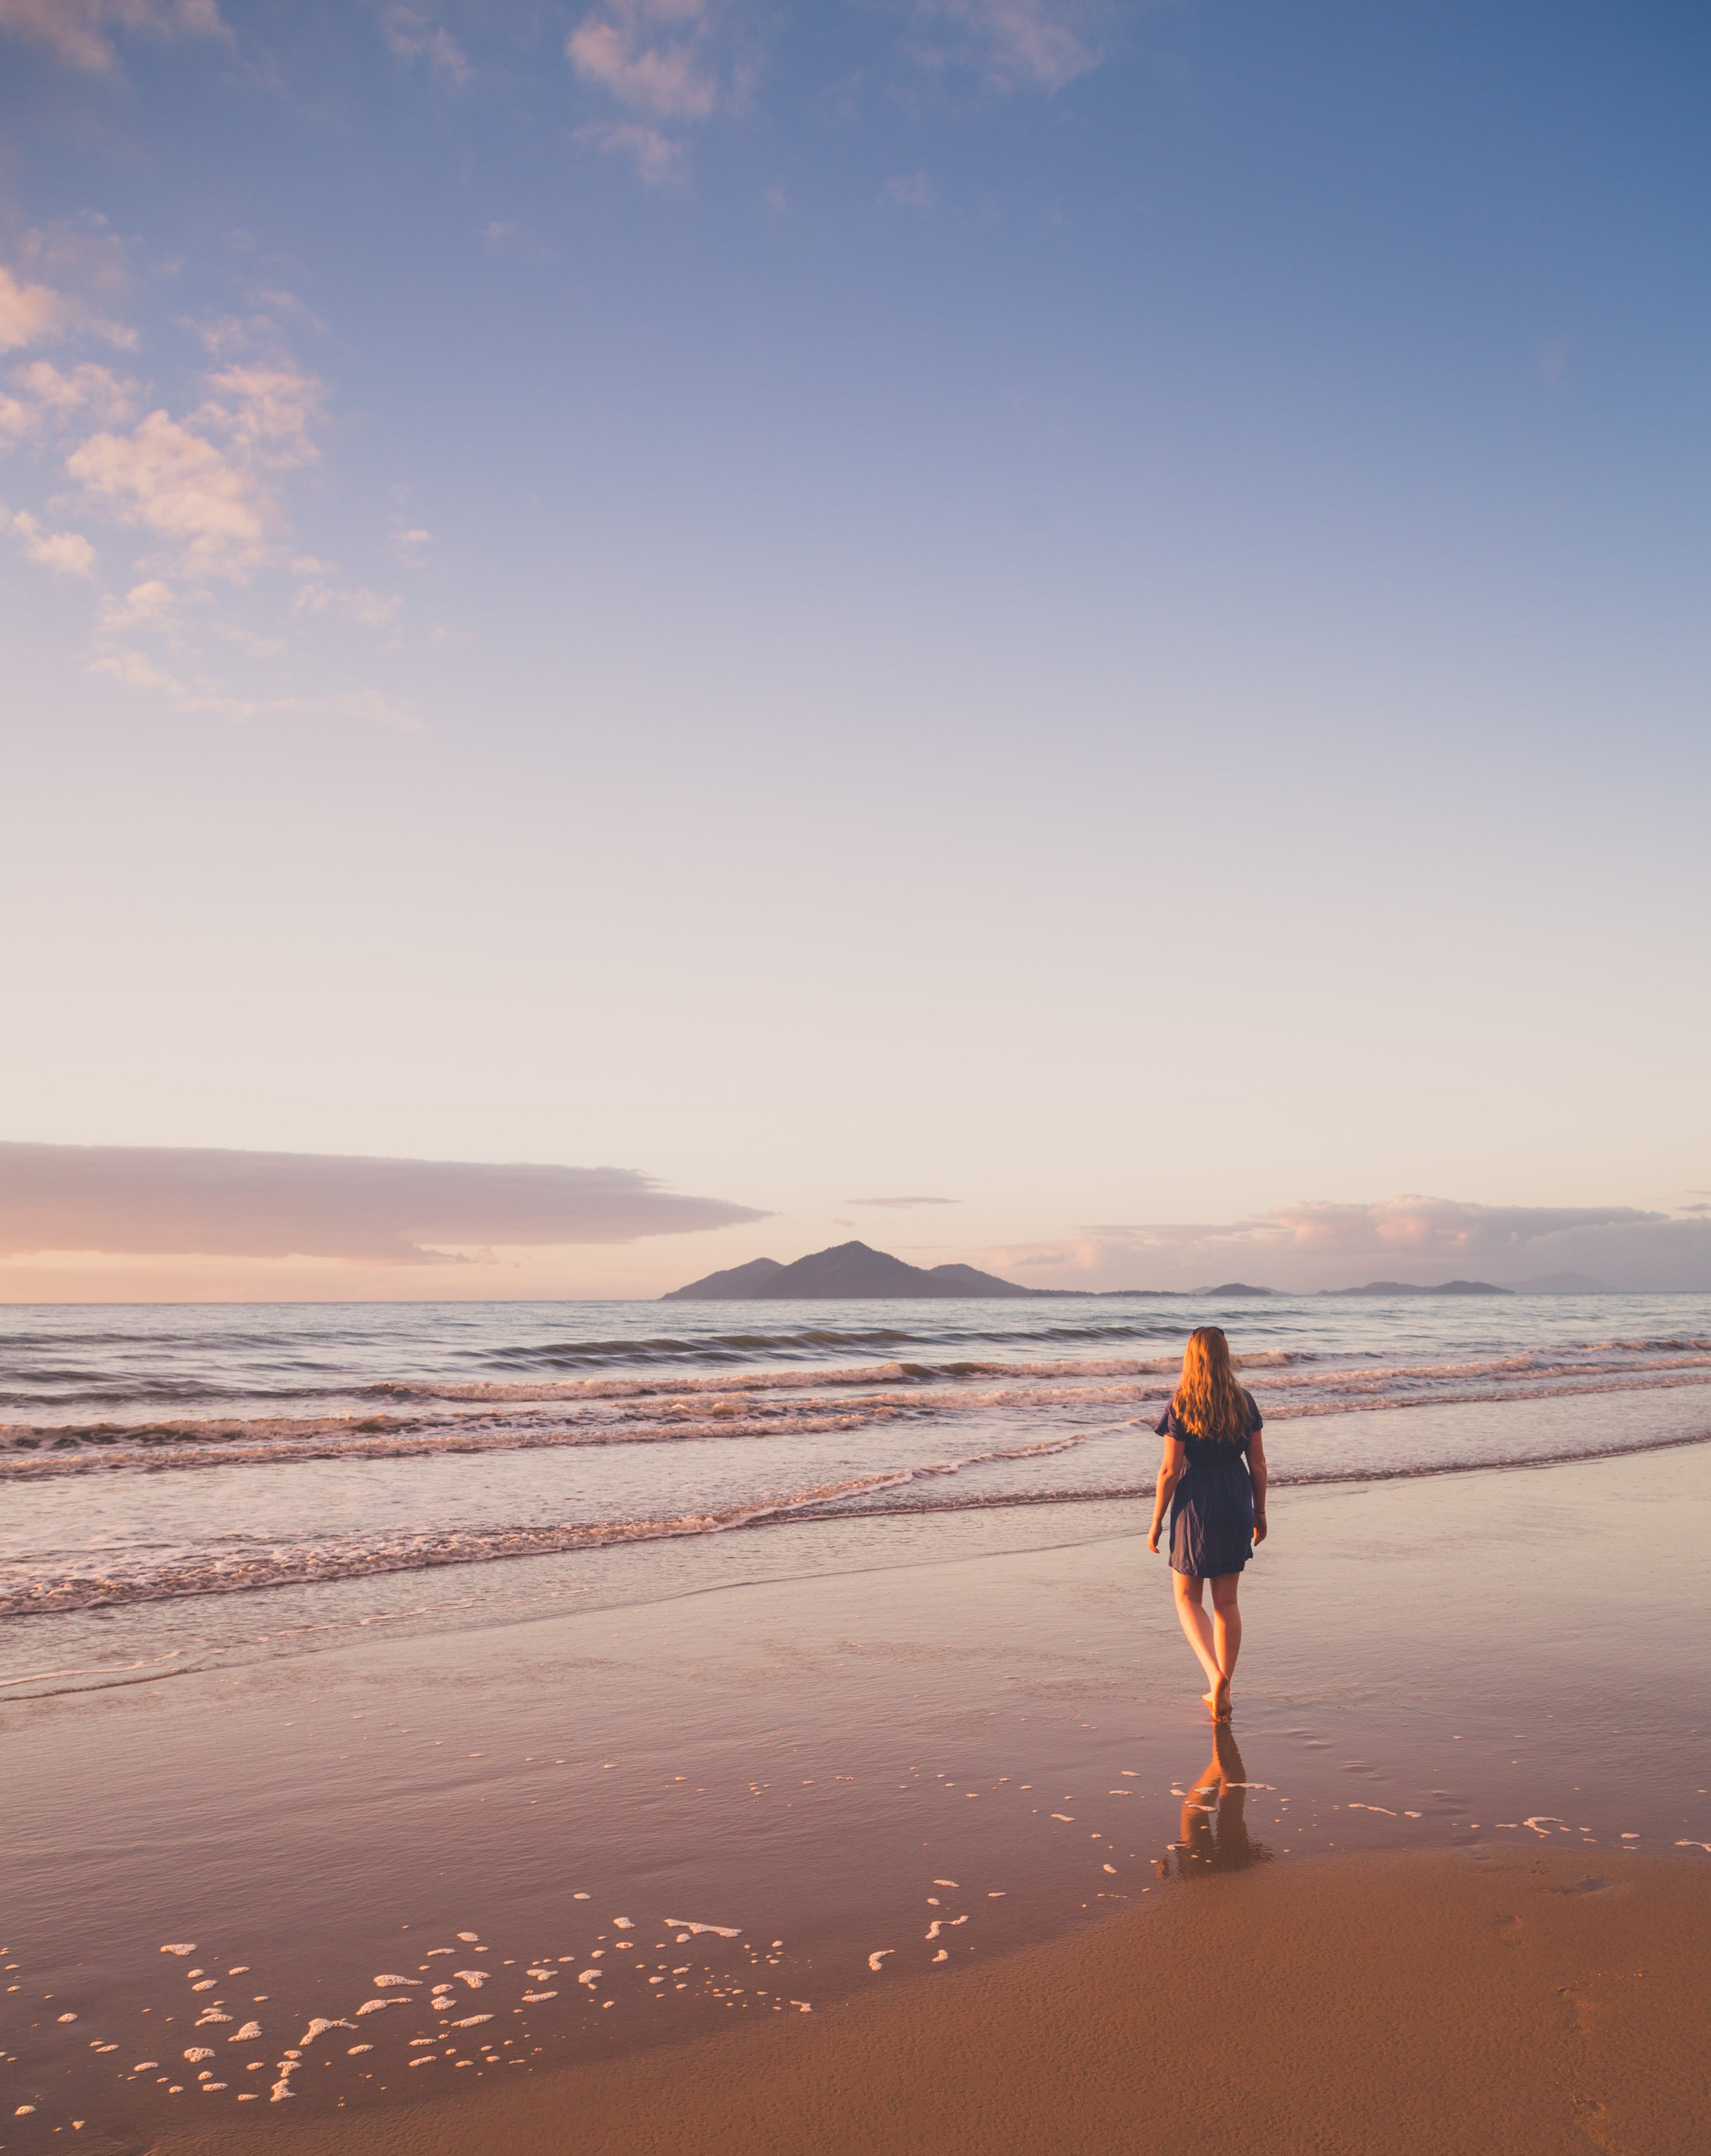 Instagrammable spots near Cairns: Mission Beach